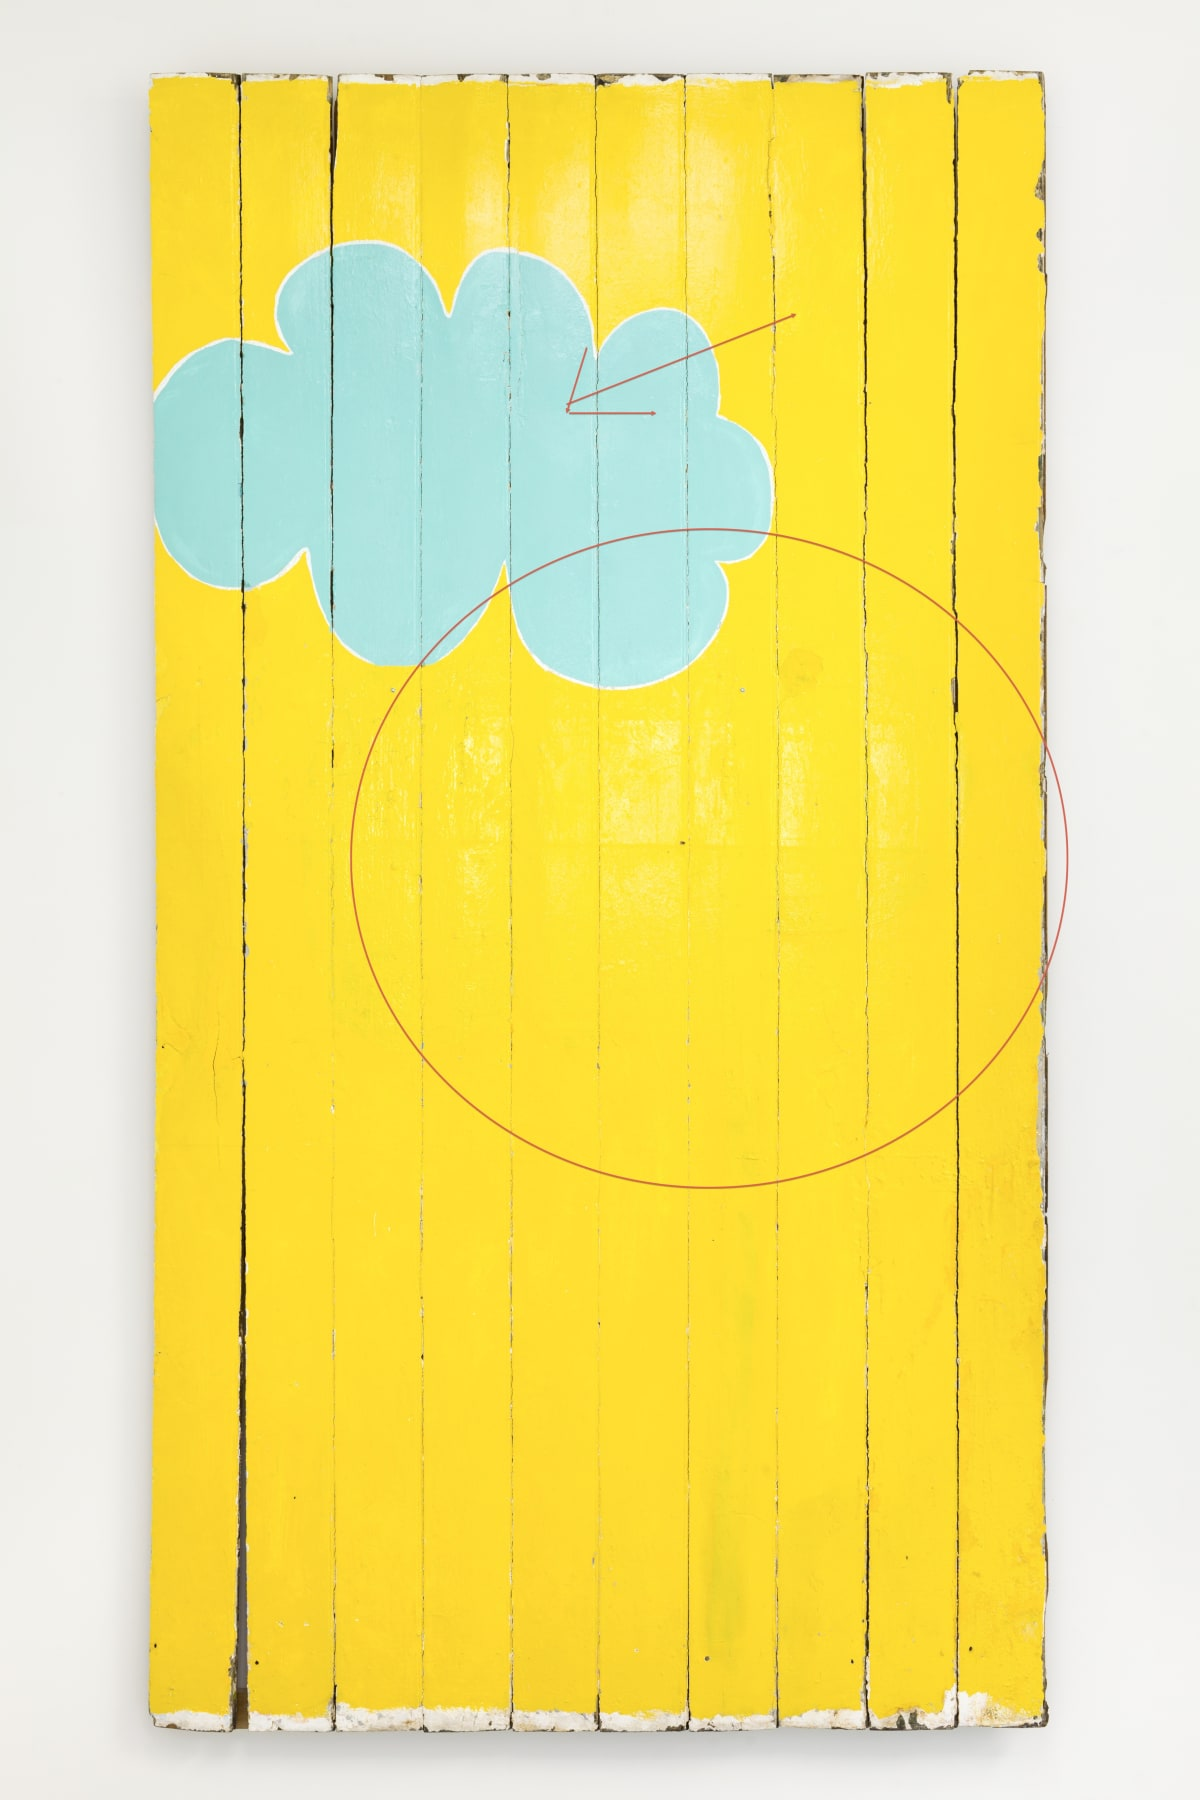 Gary Hume The Cloud of Unknowing, early 1990's household gloss on panels 270 x 145cm